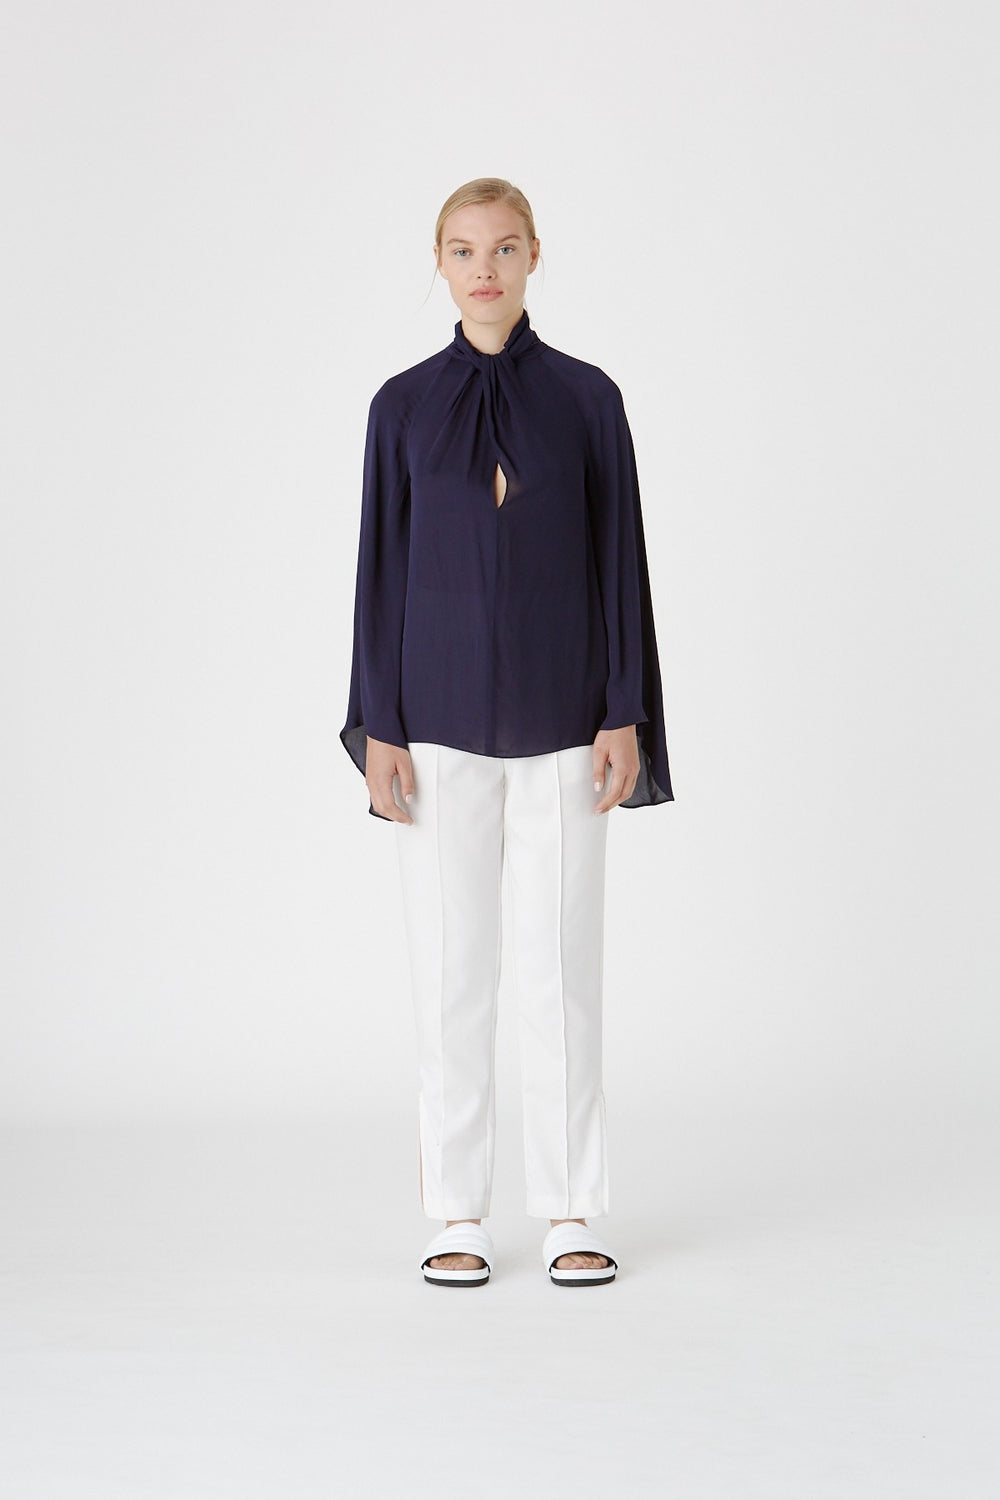 The Loren Long Sleeve Top in Indigo by CAMILLA AND MARC